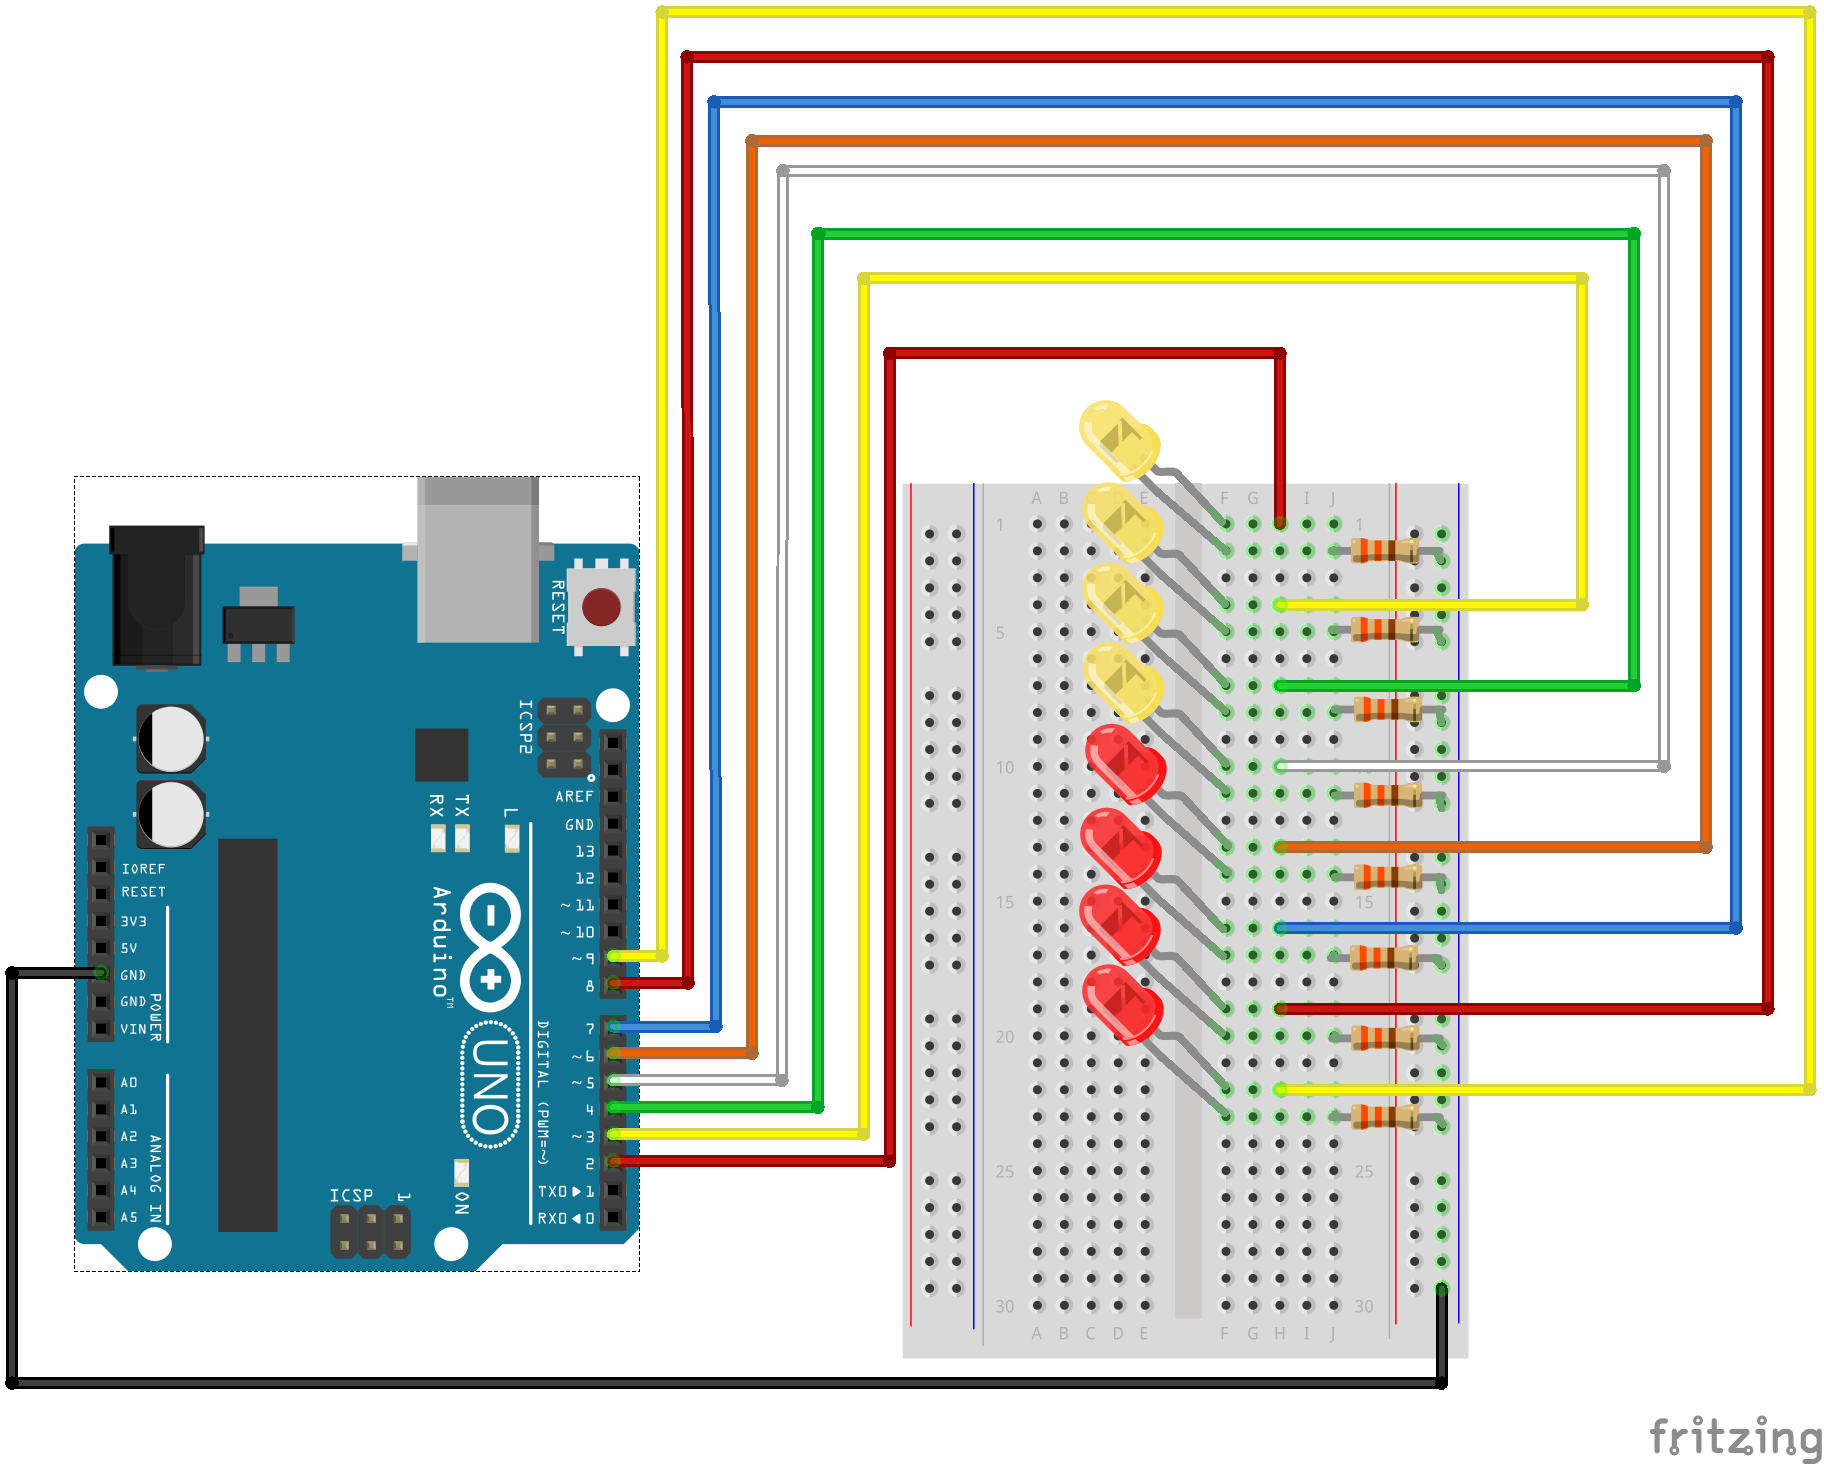 Sik Experiment Guide For Arduino V33 Led Wiring Diagram 3 Alt Text